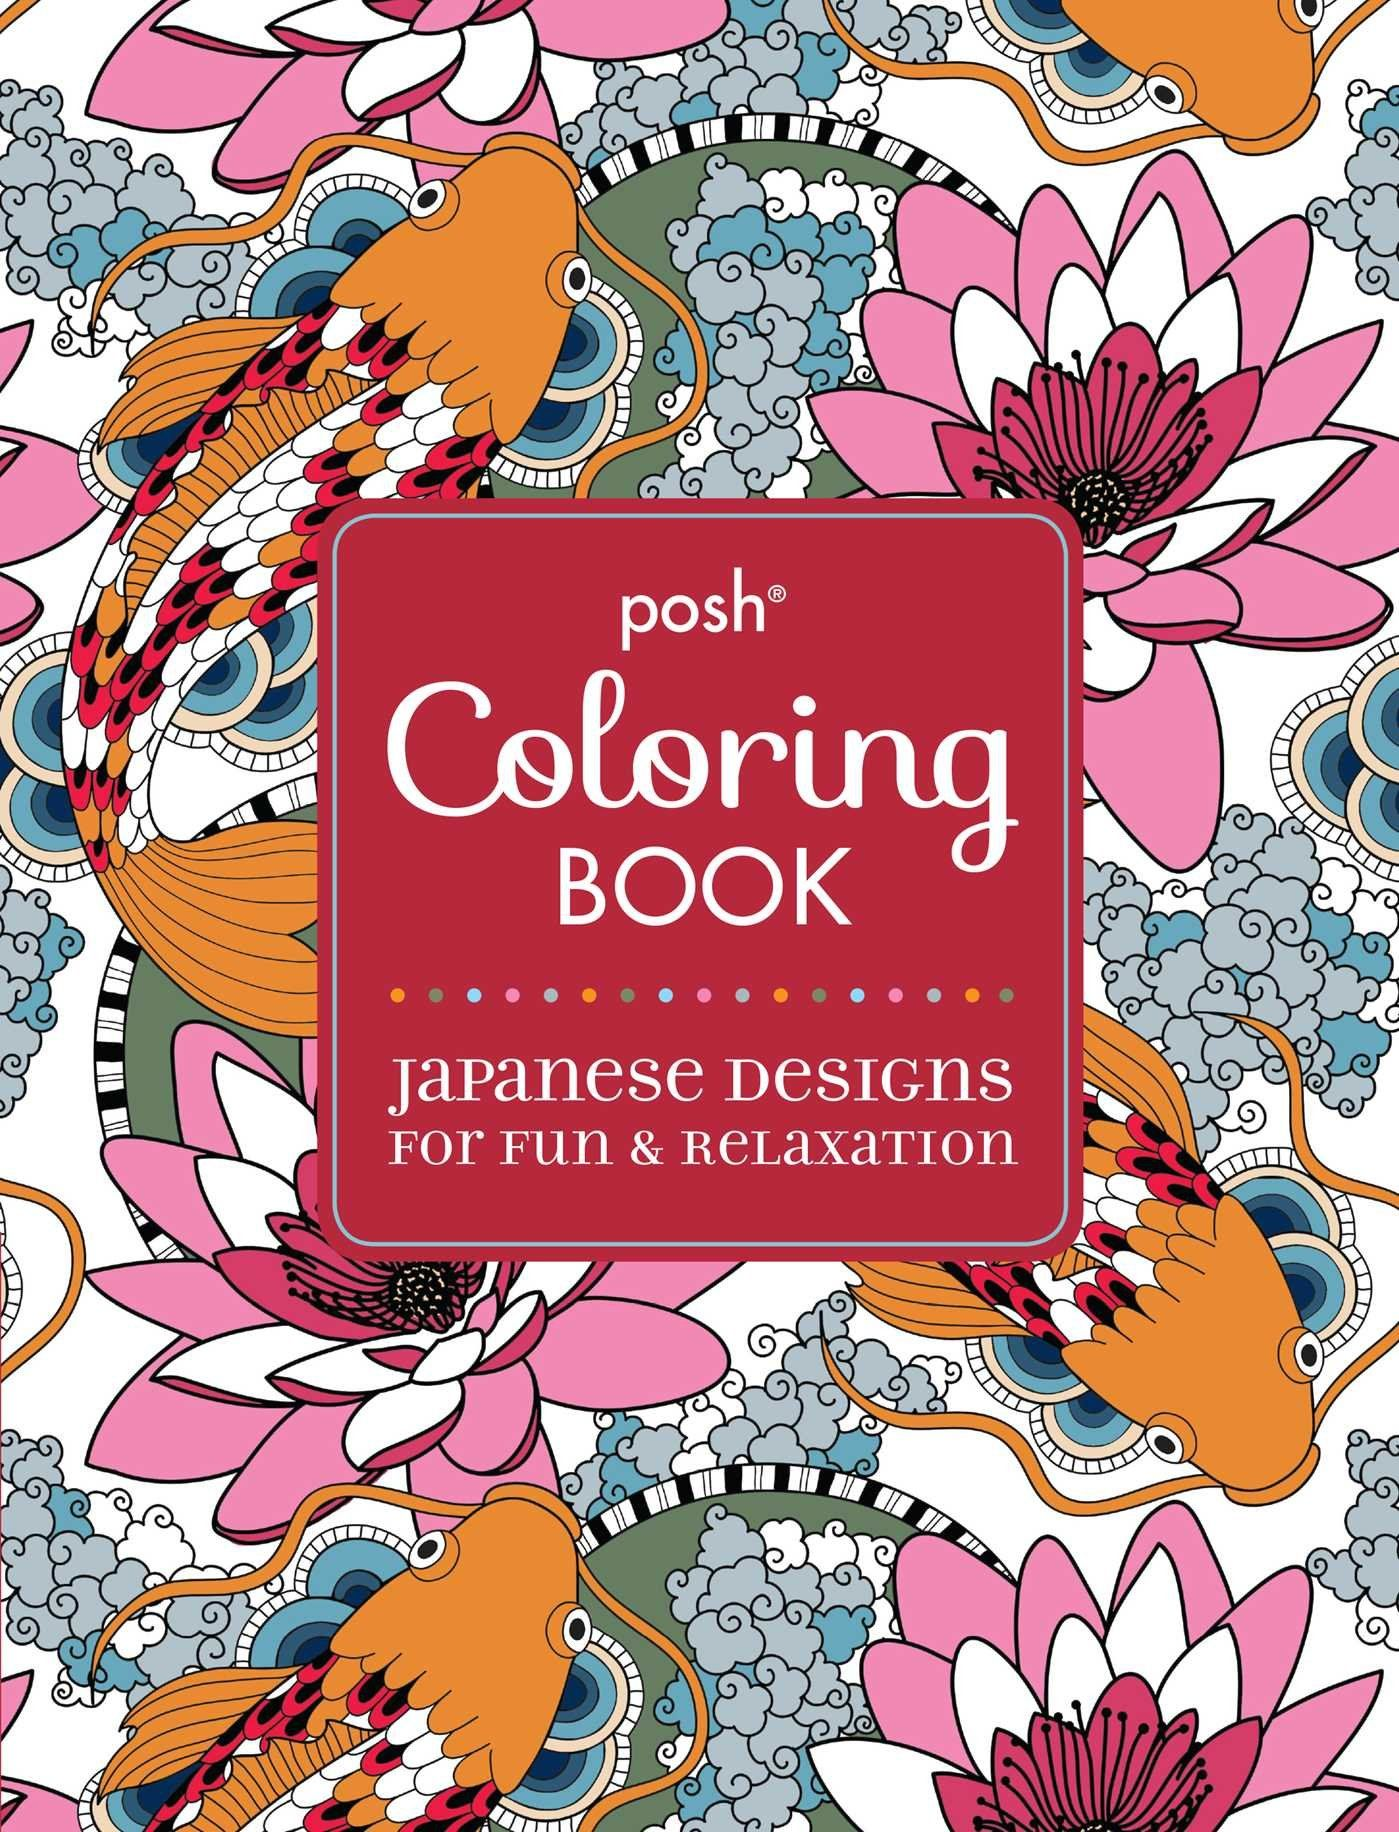 amazoncom posh adult coloring book japanese designs for fun and relaxation - Coloring Book Fun